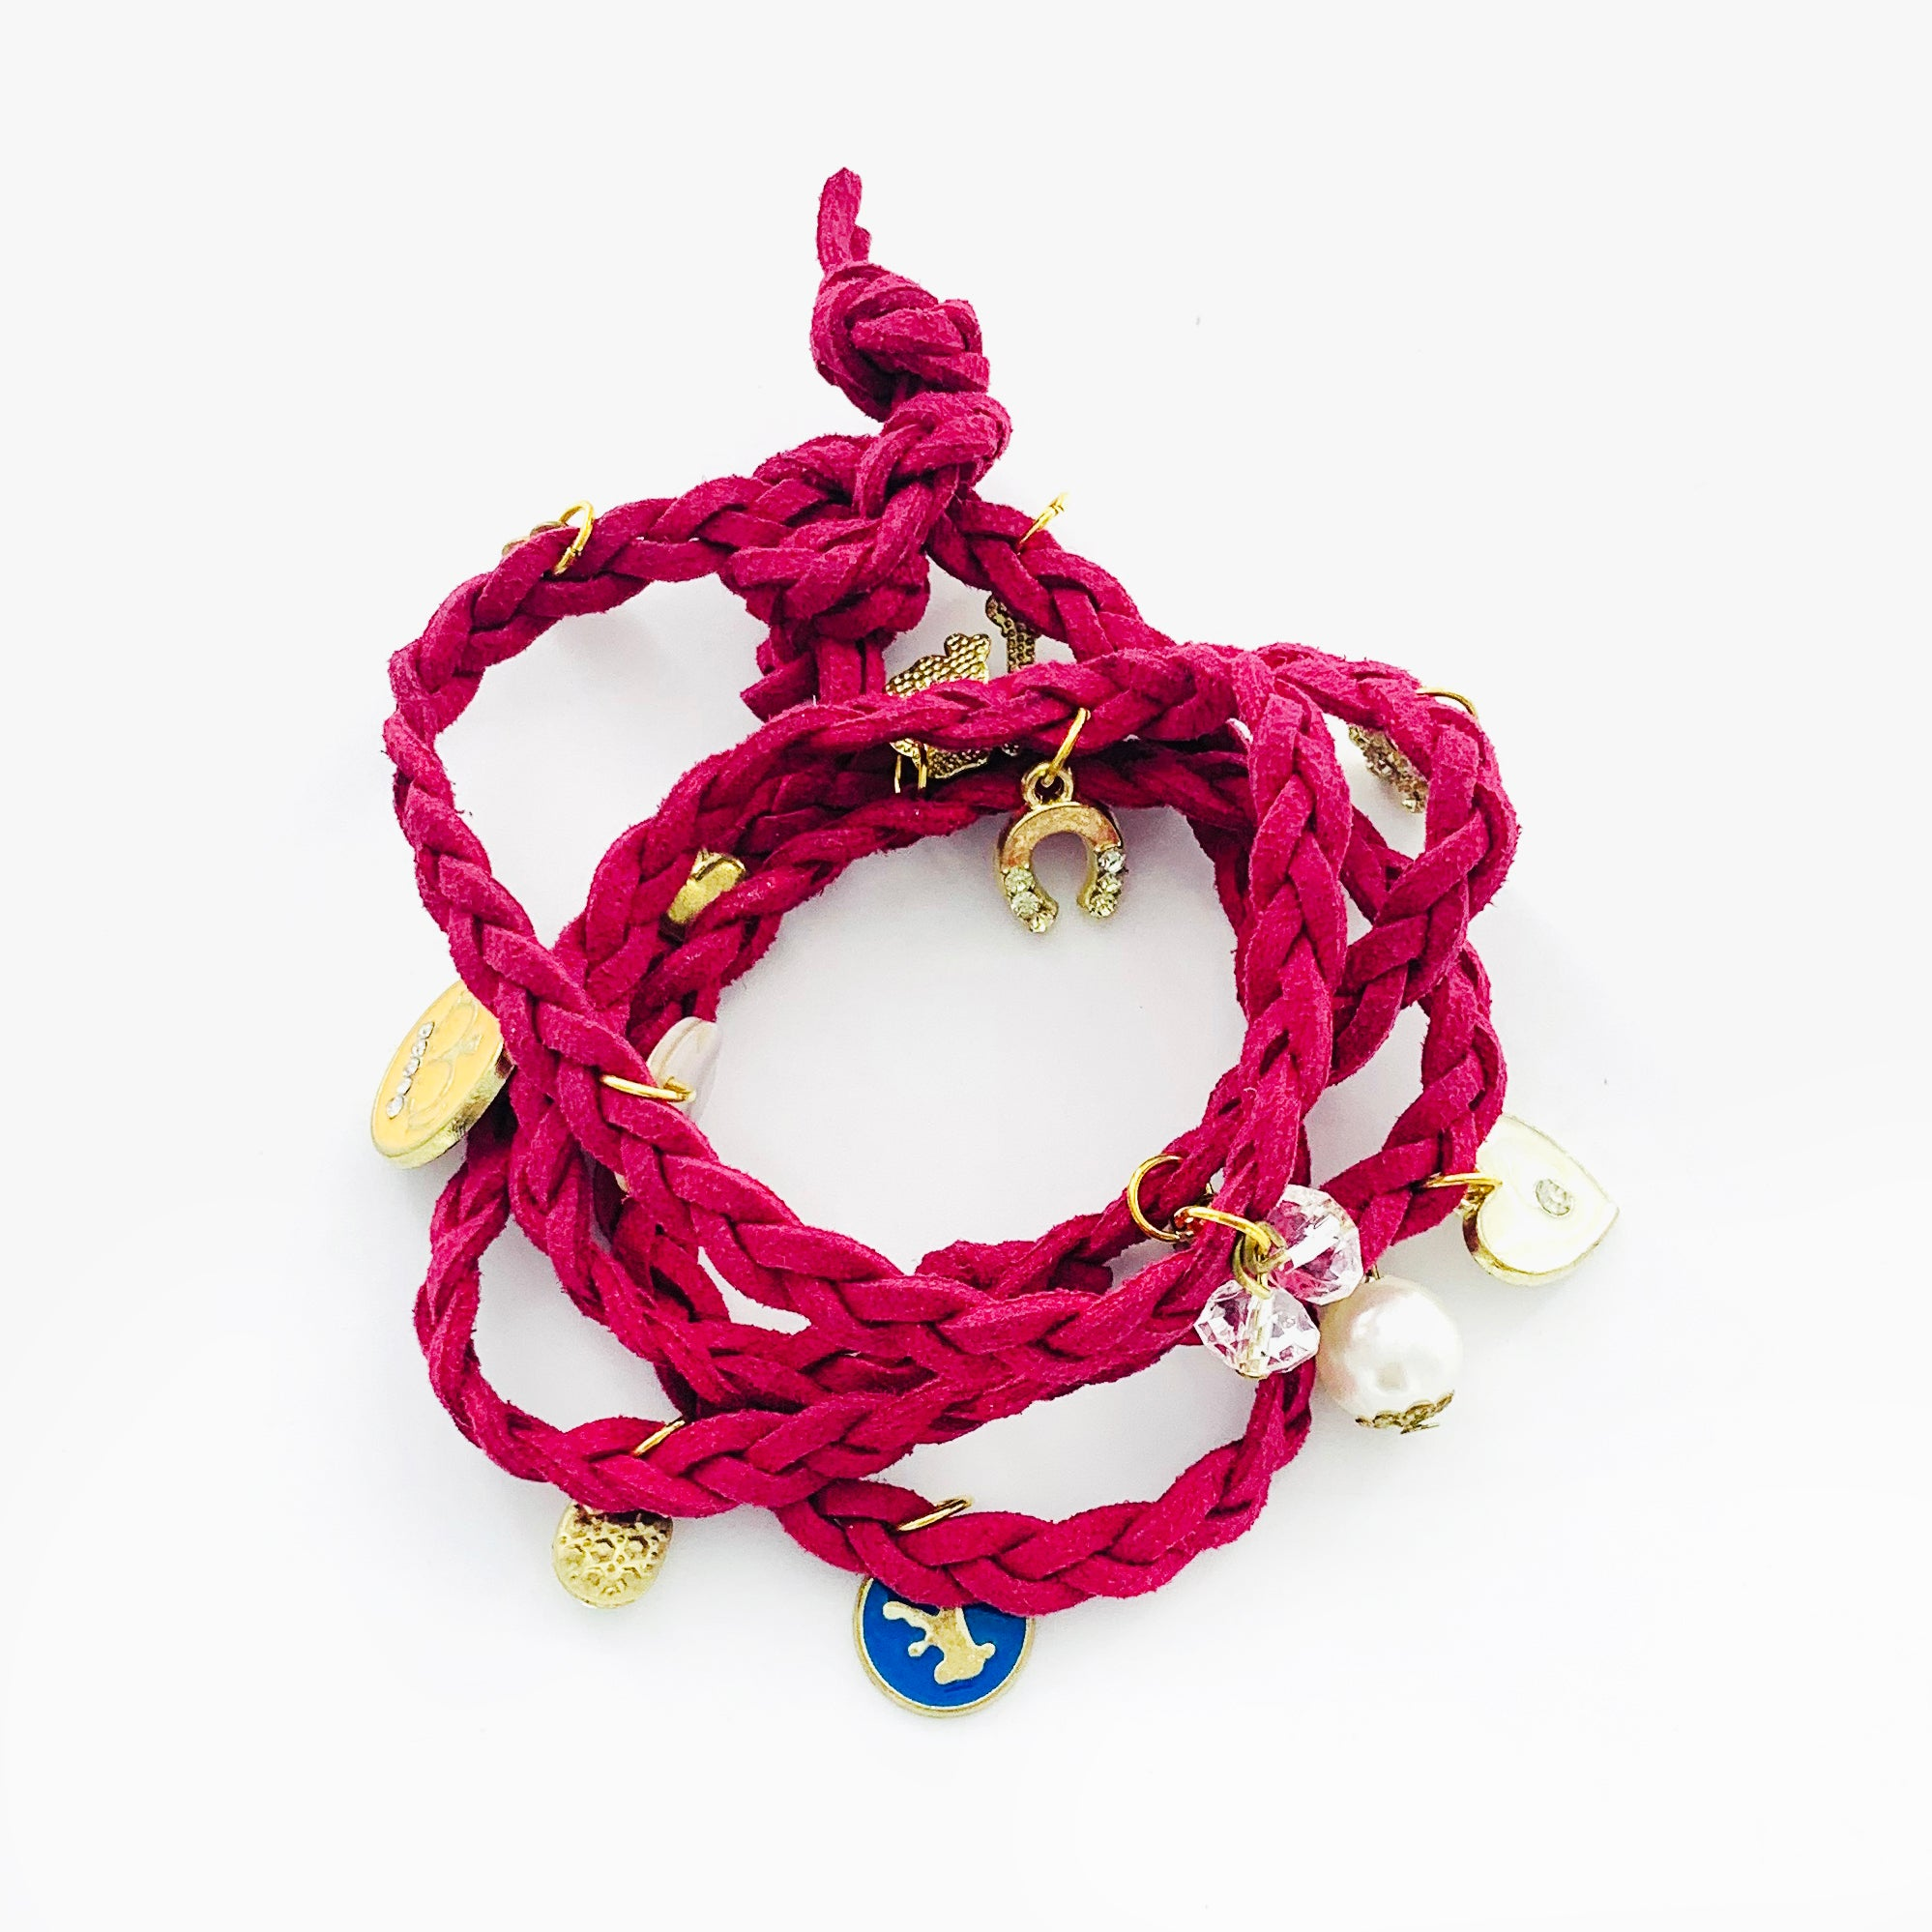 Maroon red rope leather wrap with charms